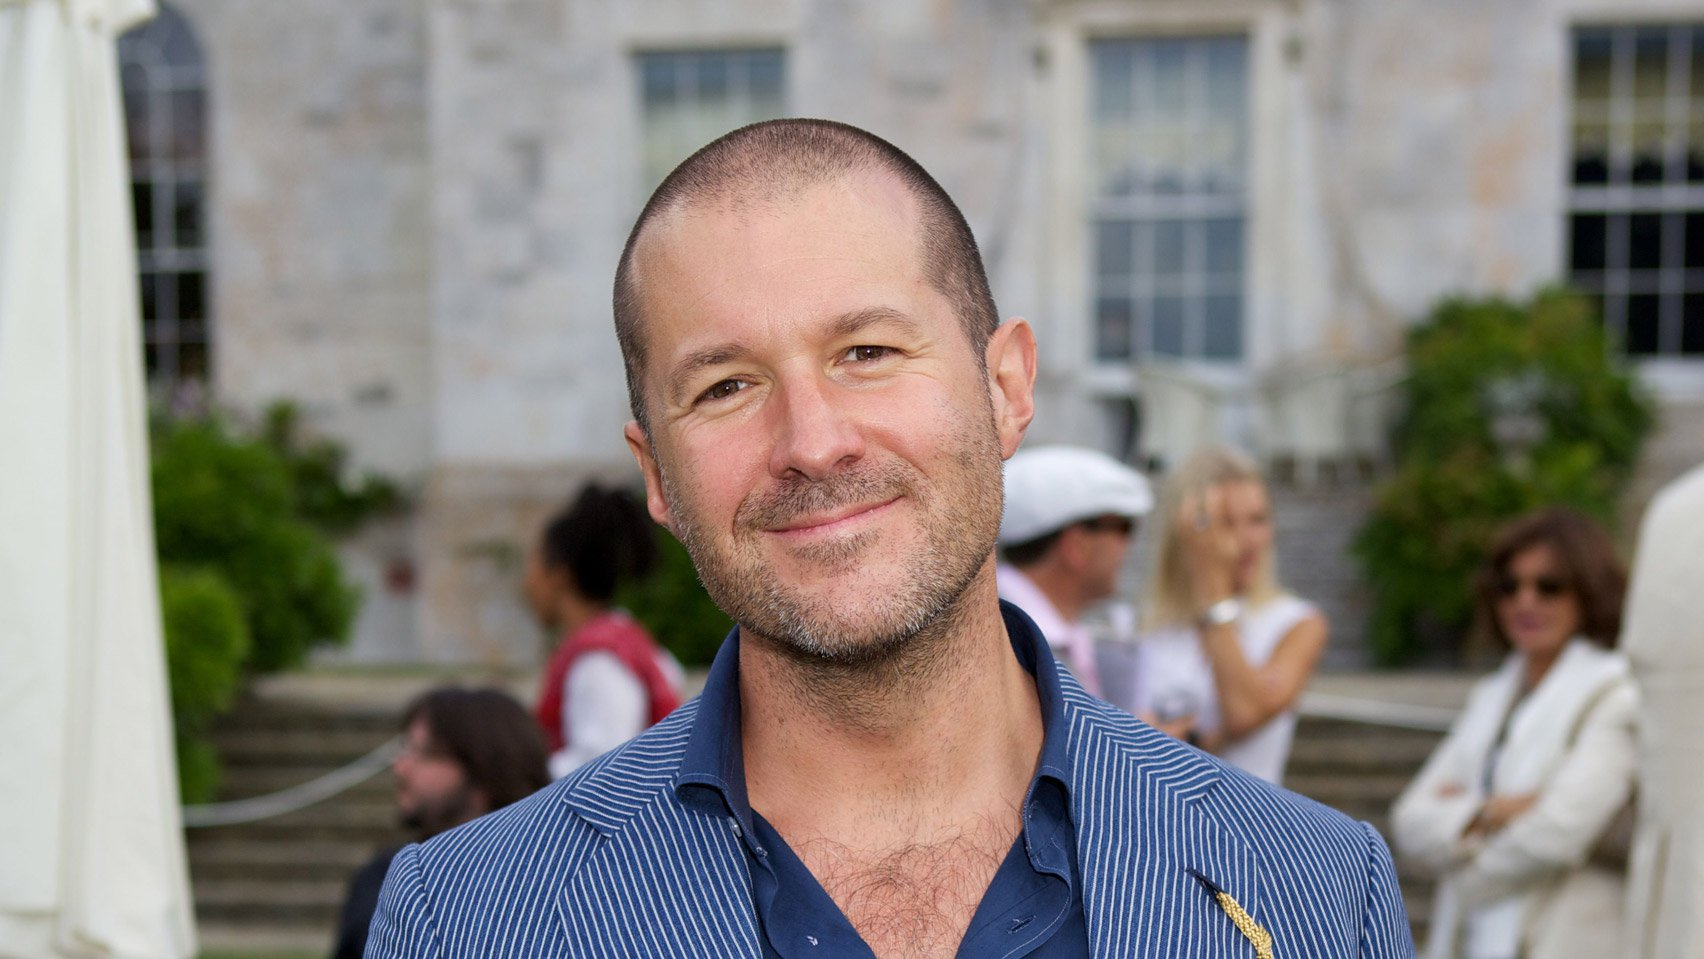 Apple's Jony Ive Appointed Chancellor of Royal College of Art